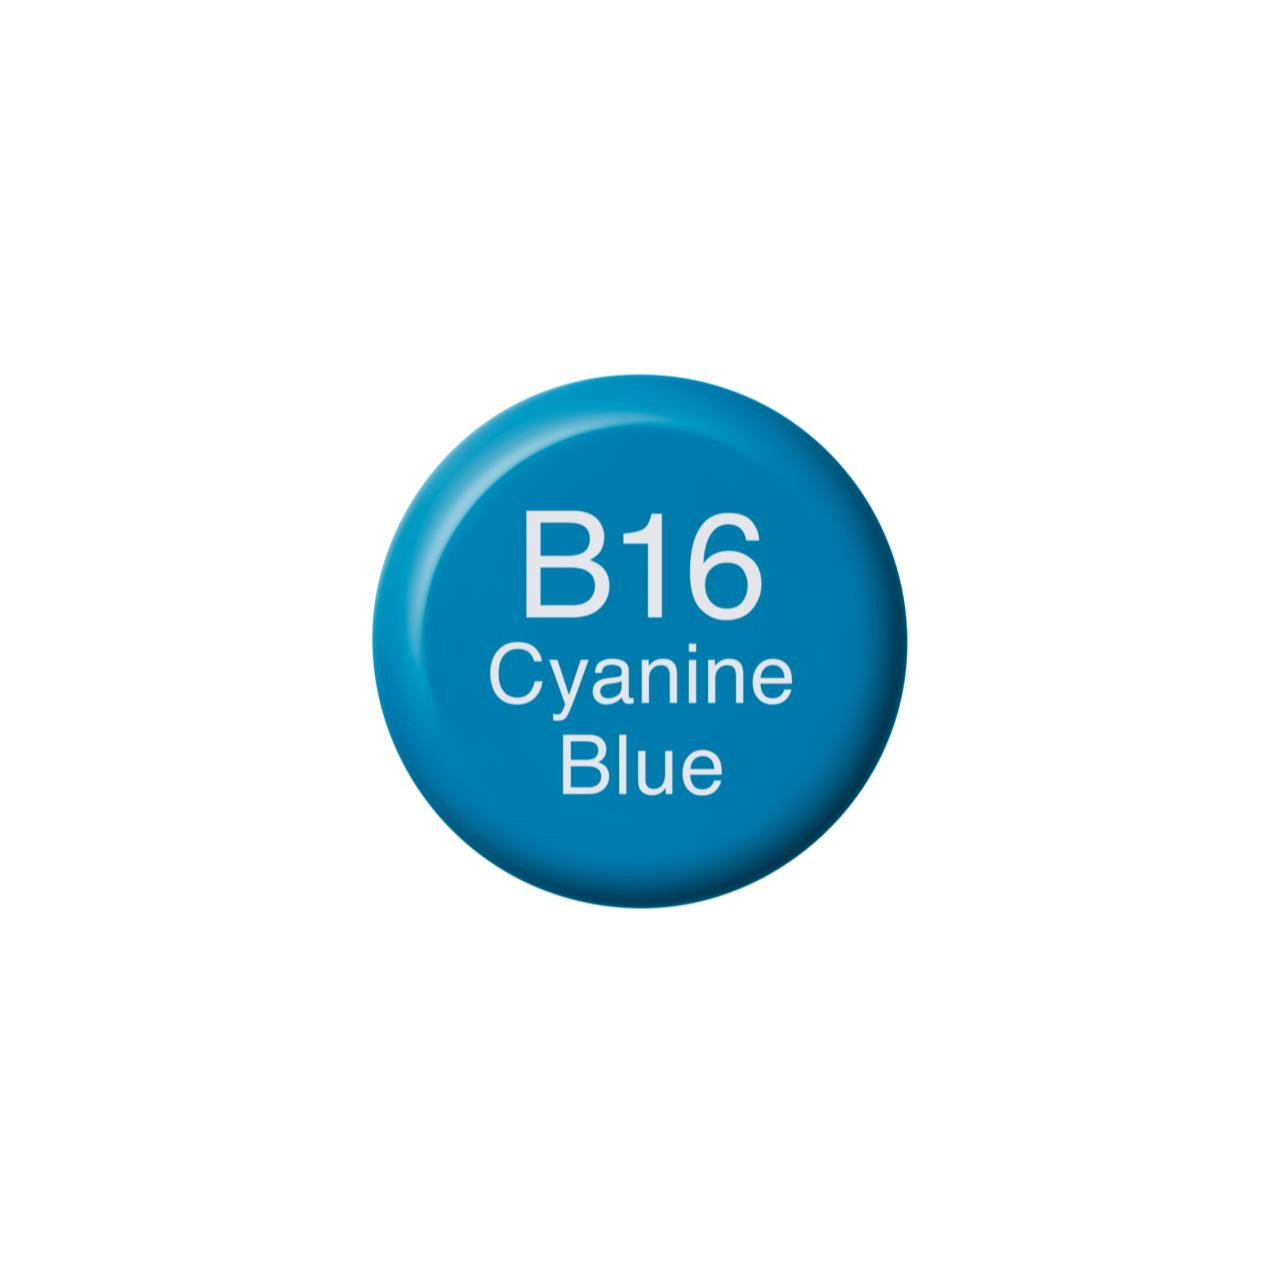 B16 Cyanine Blue, Copic Ink - 4511338055908